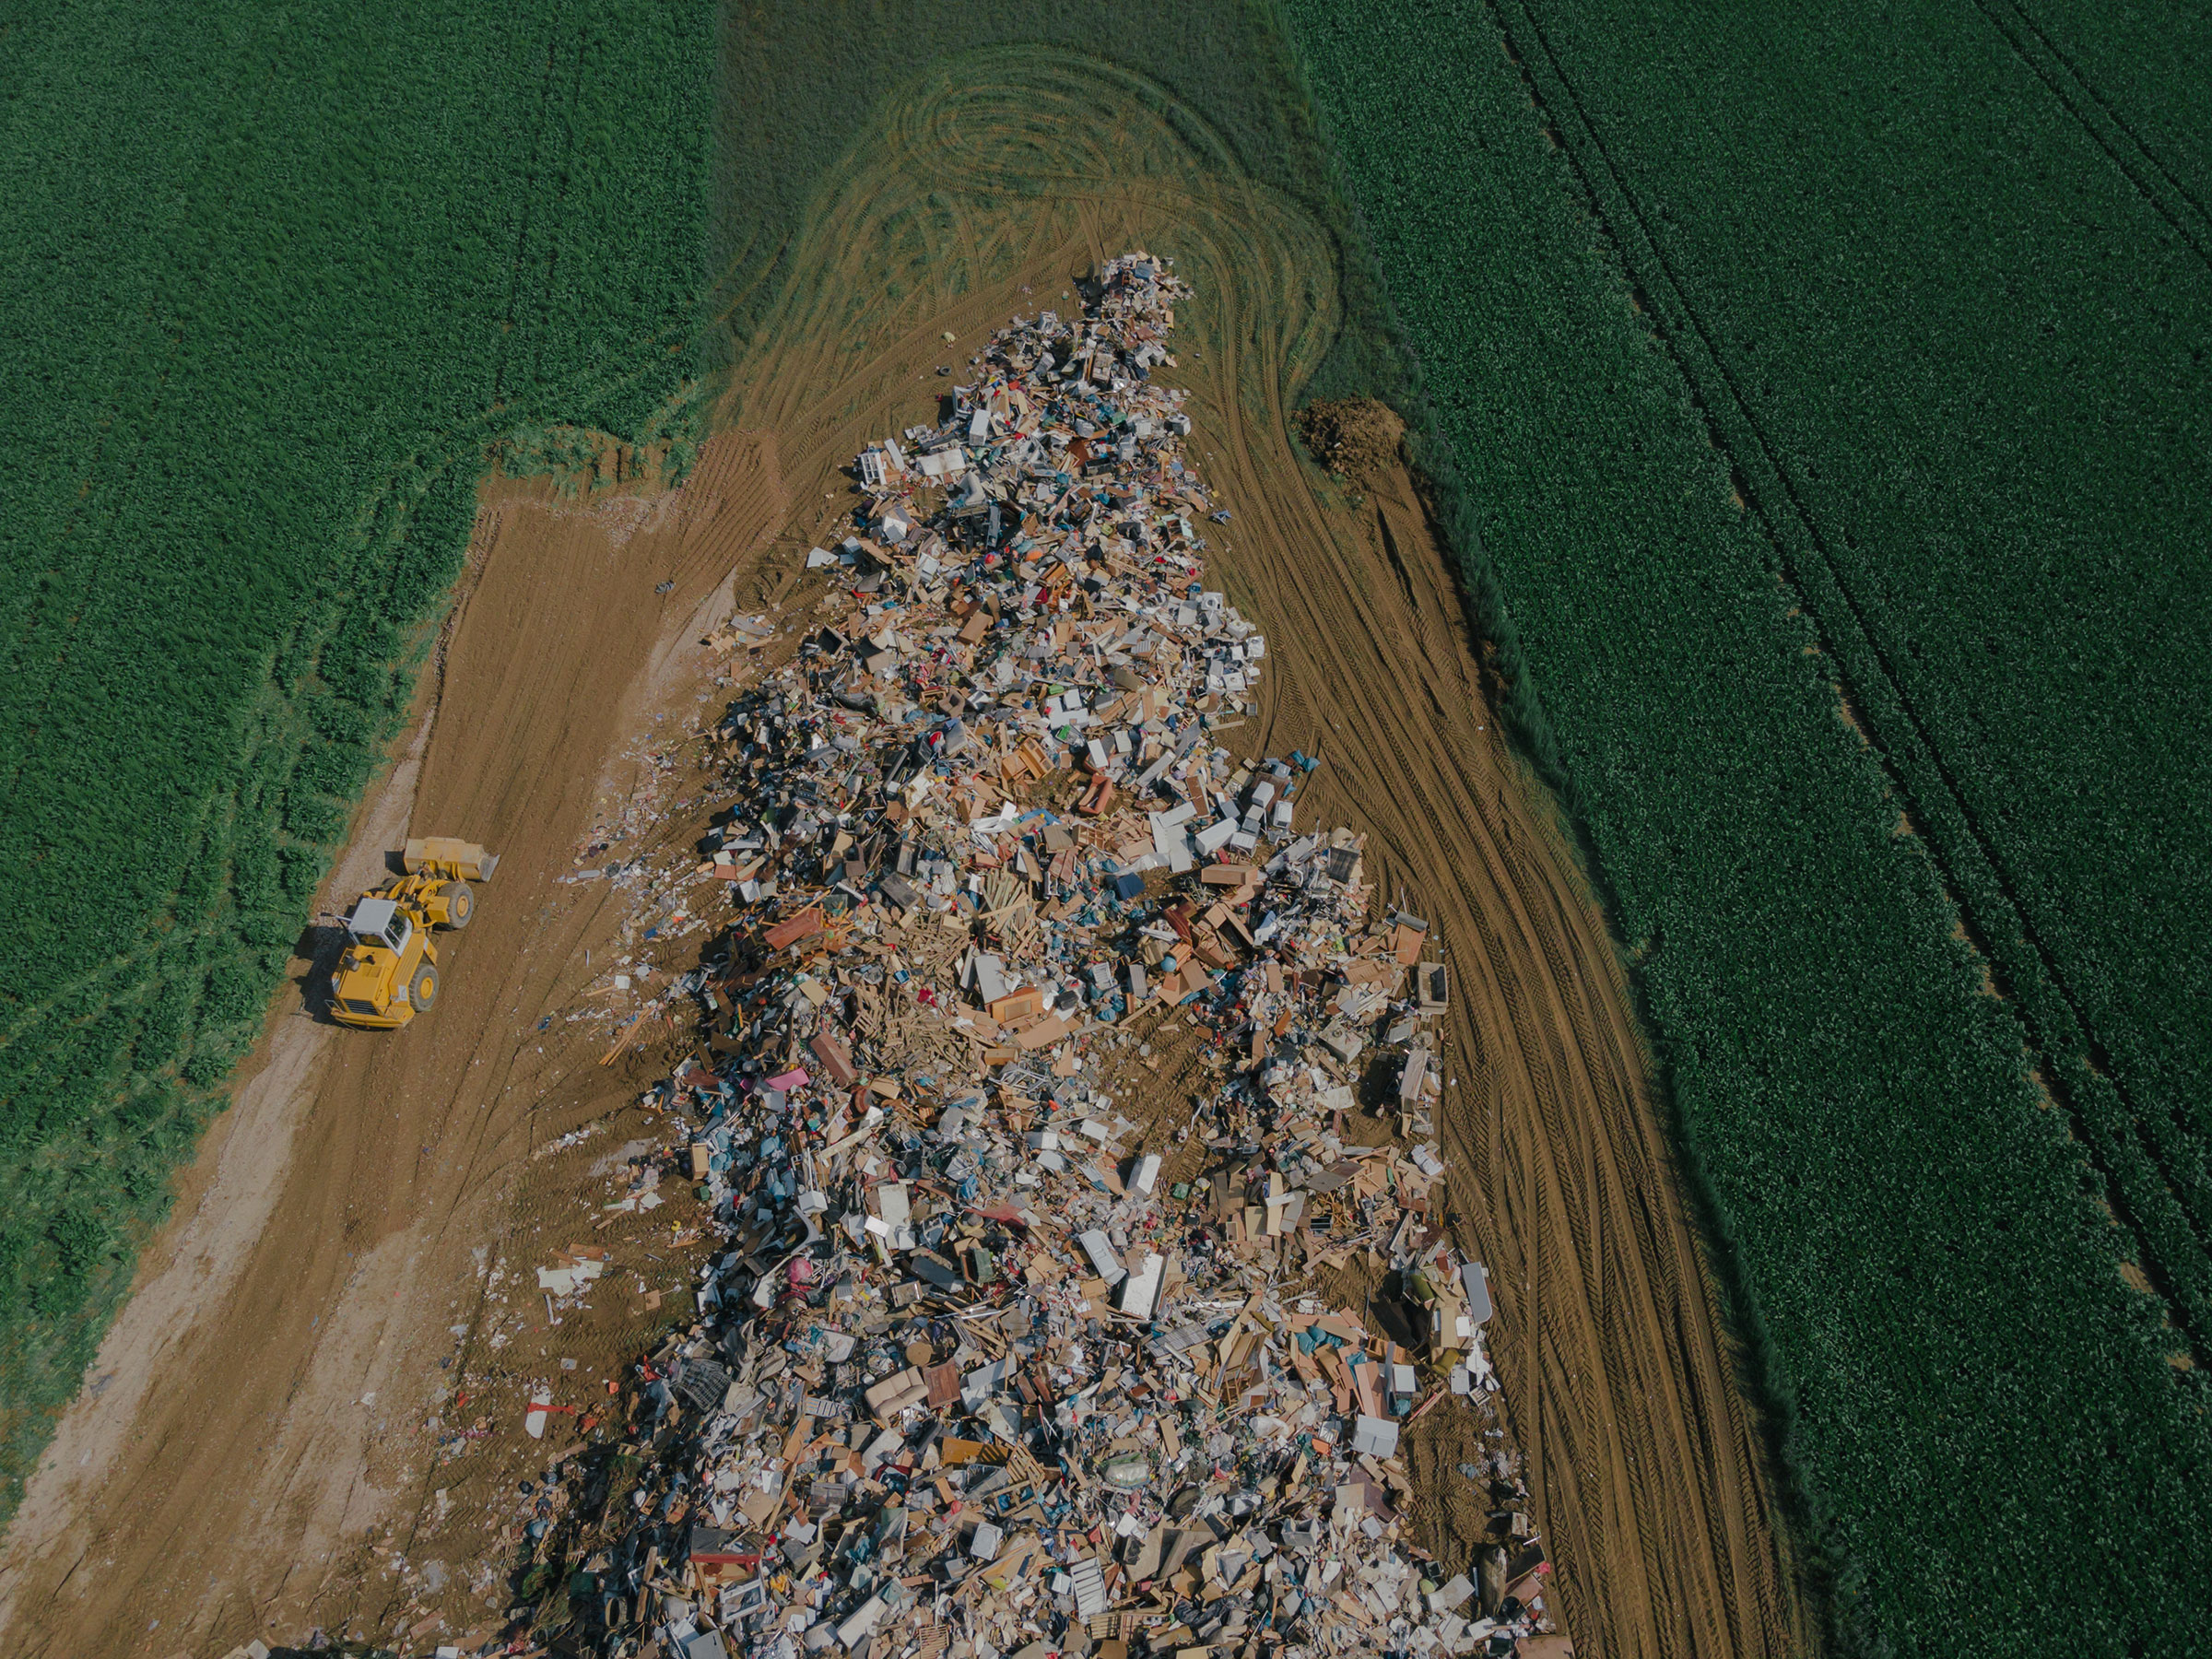 A temporary collection site for flood debris in Rheinbach, Germany, on July 17.